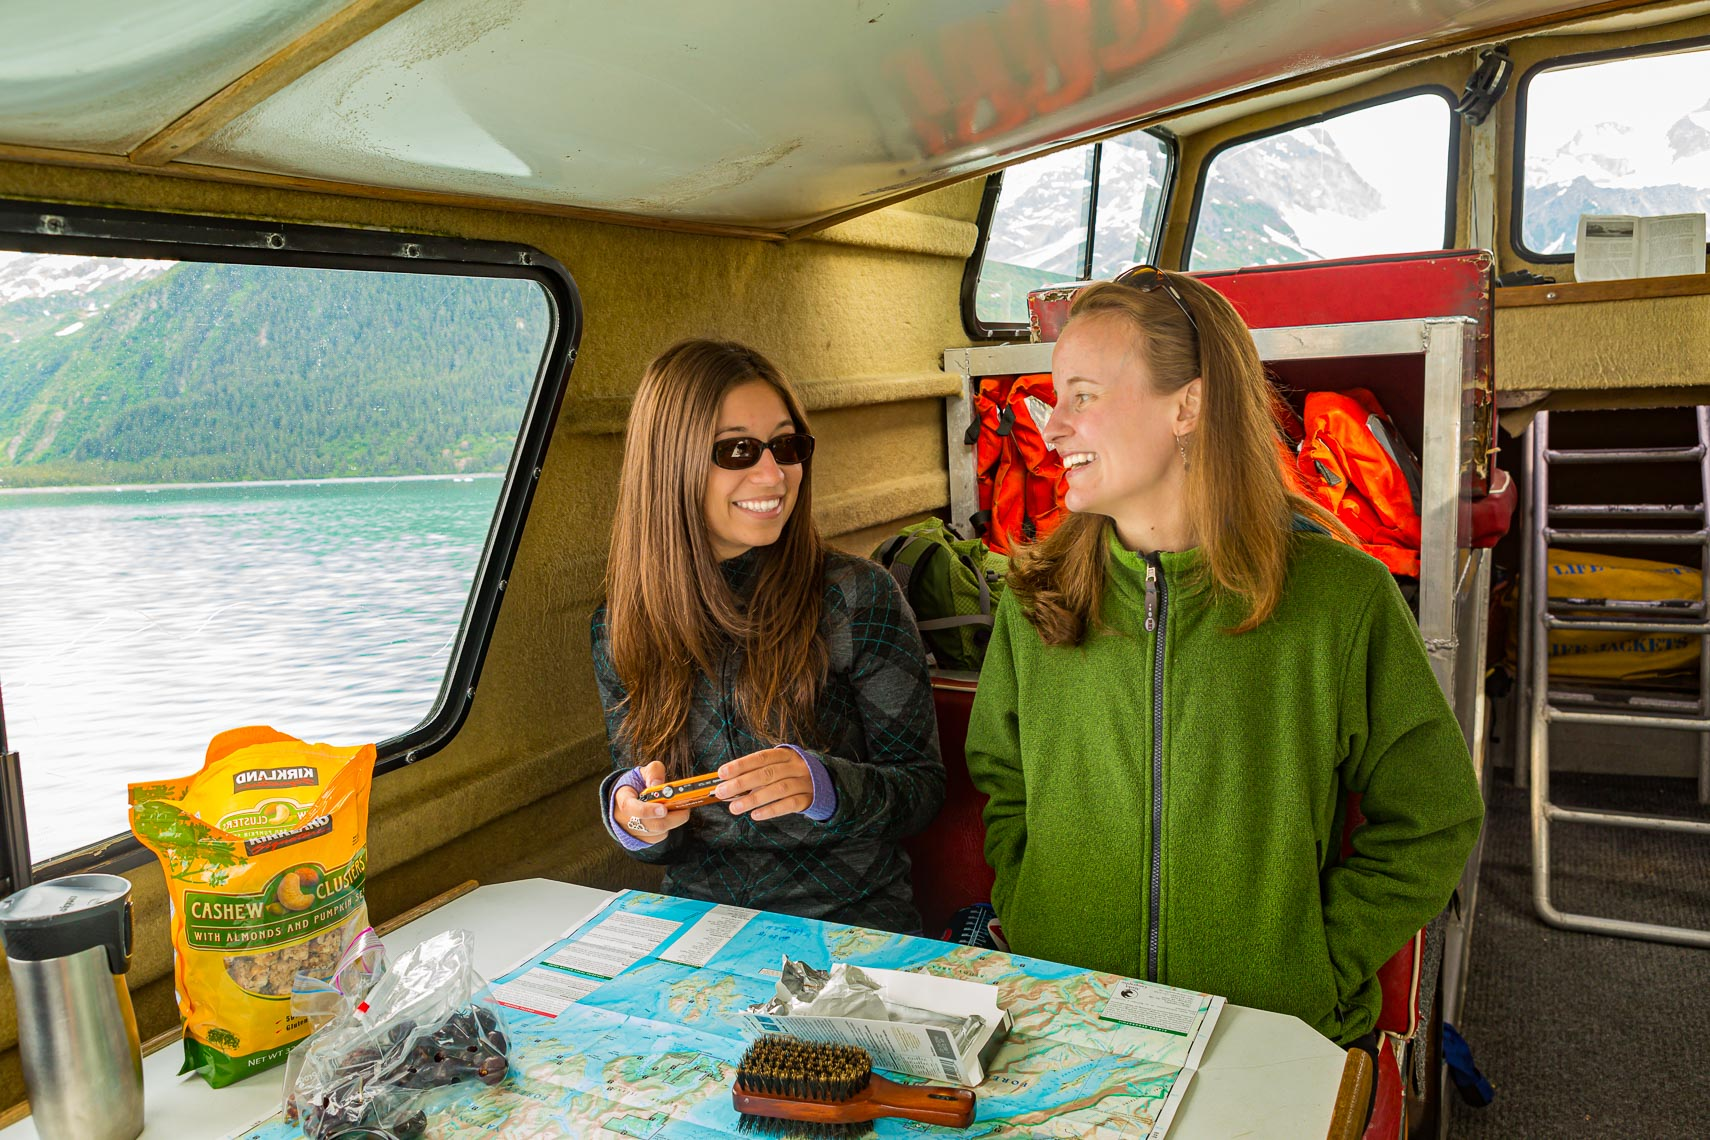 Alaska Travel Tourists on Charter Boat Tour | Michael DeYoung